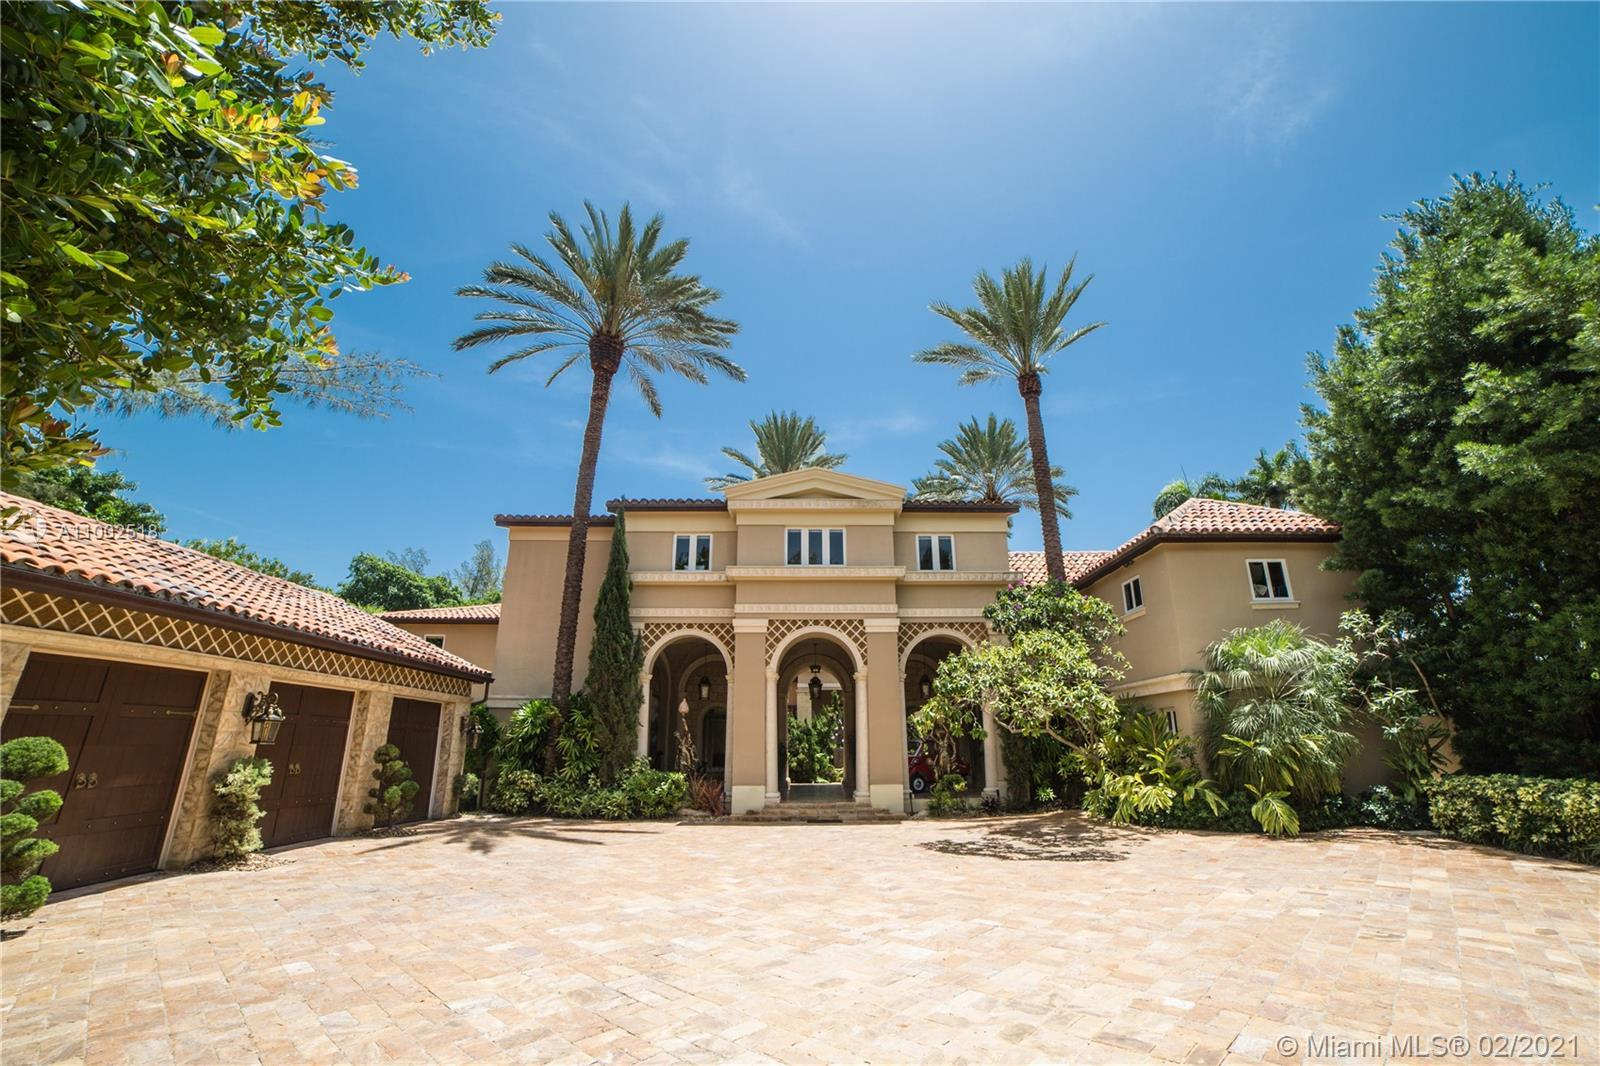 One of a kind estate on a 39,000 sq ft lot. Beautiful open courtyard. A recently renovated grand est